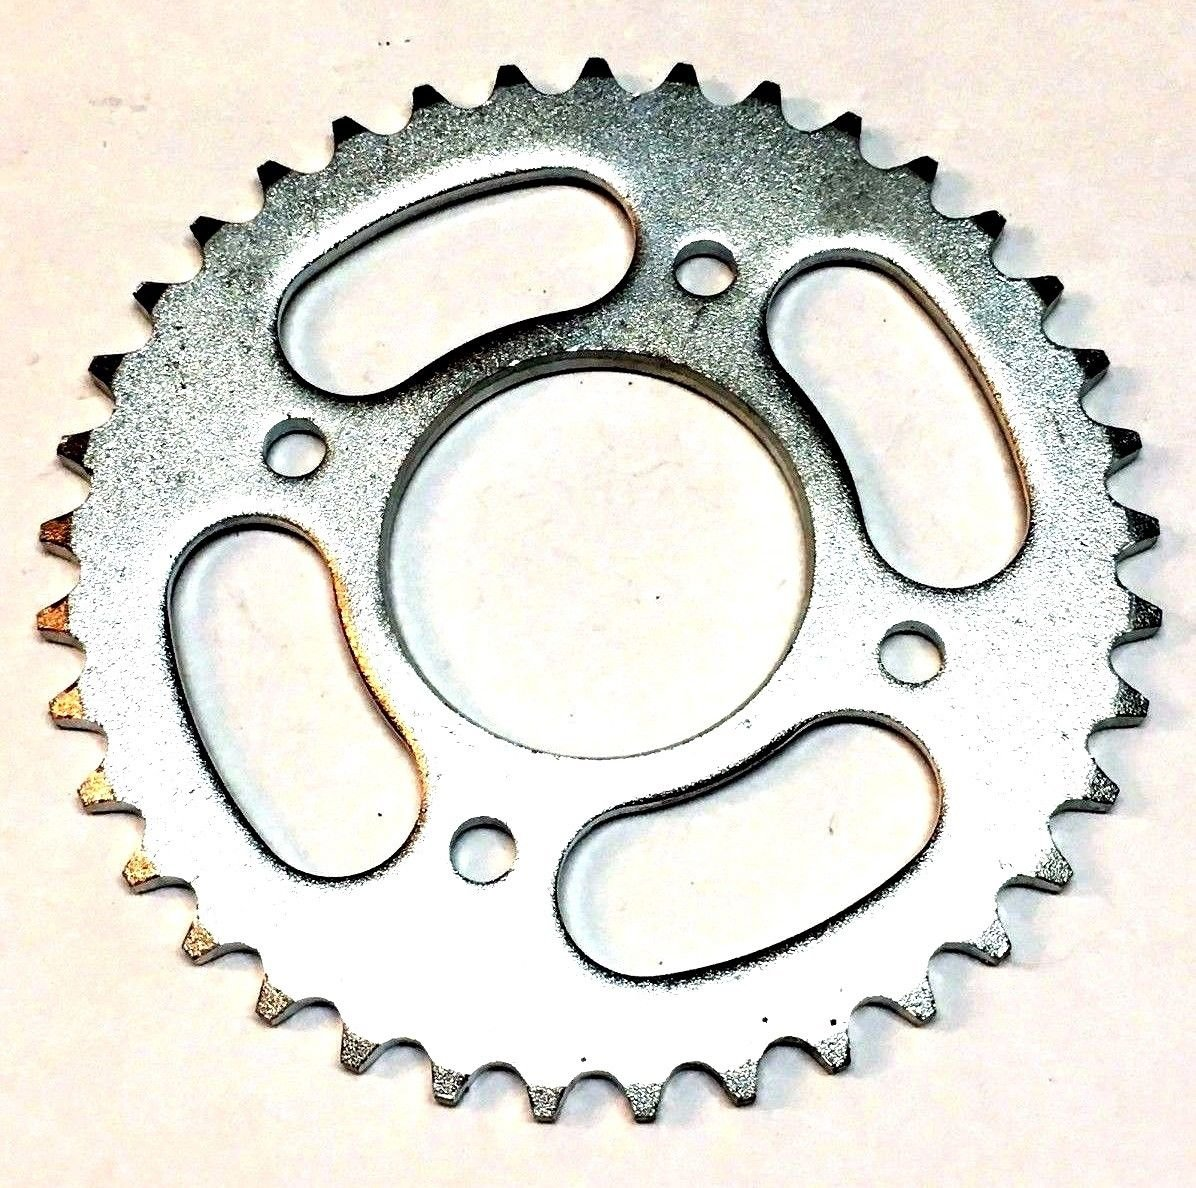 37 Tooth Rear Sprocket Size #420 Baja Dirt Runner Dr49 Dr50